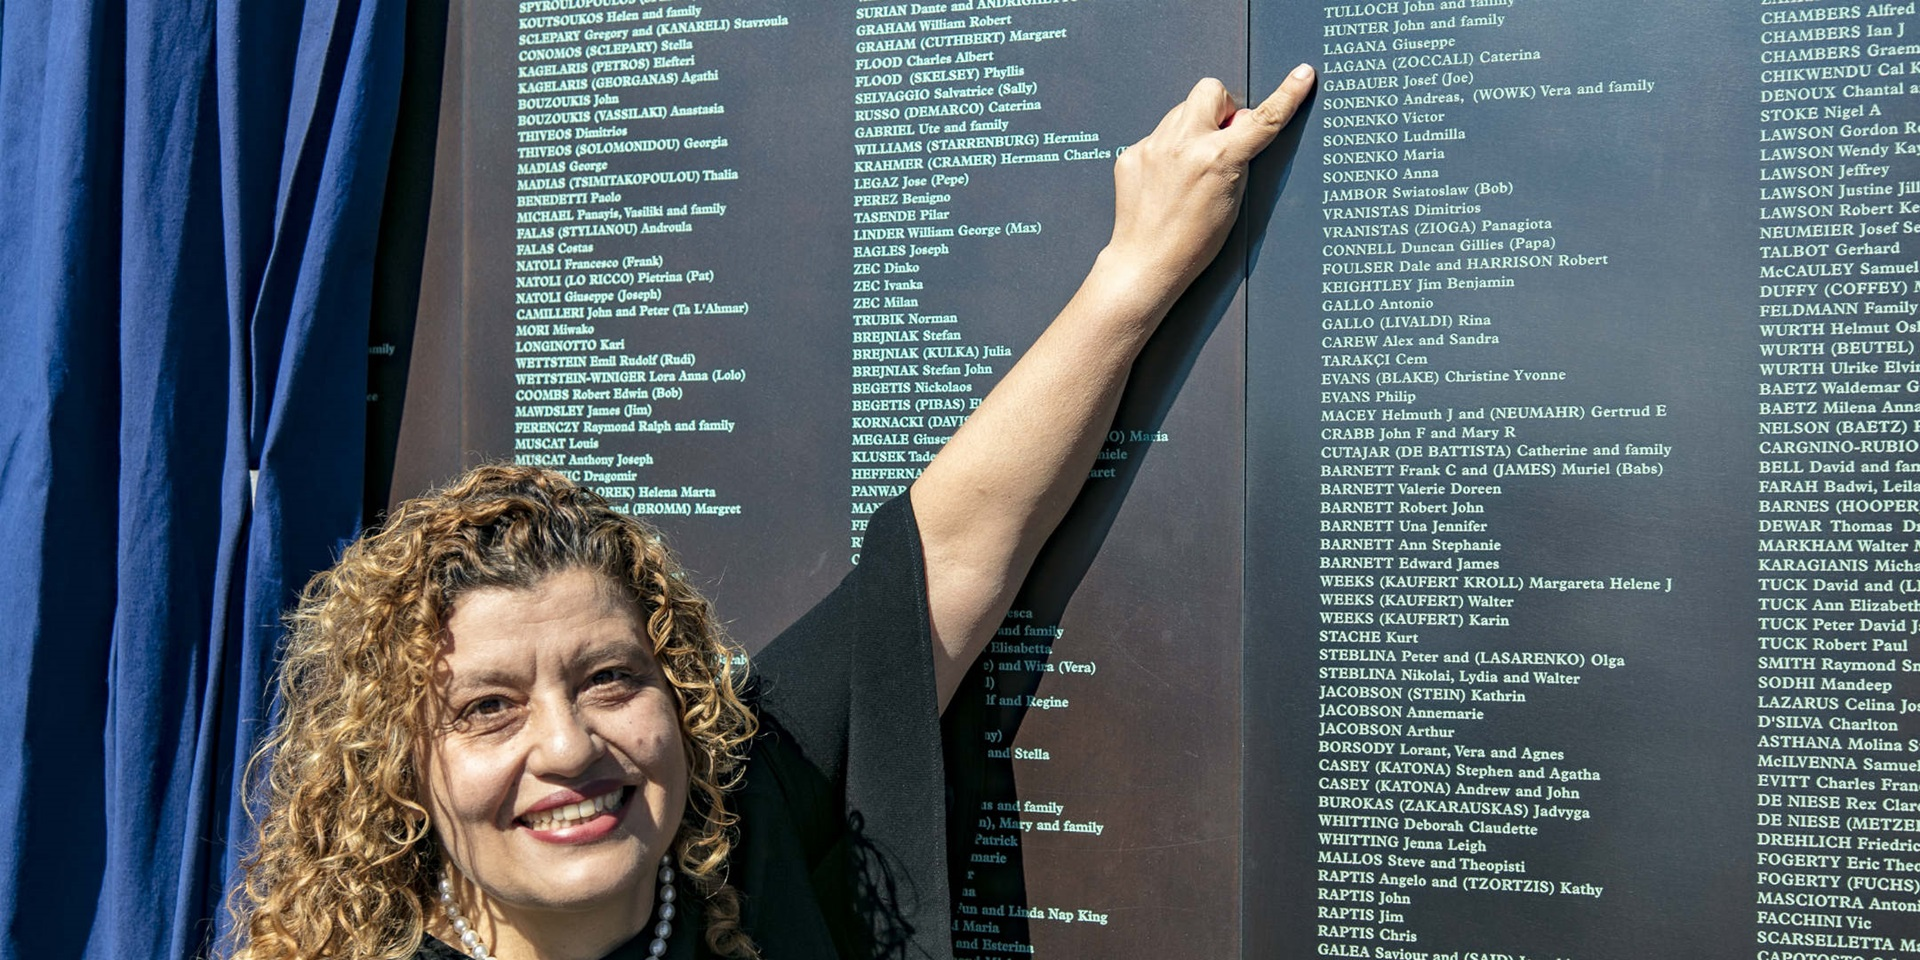 Welcome Wall unveiling ceremony, 7 May 2018. Mary Lagana, daughter of Giuseppe and Caterina from Calabria, Italy.